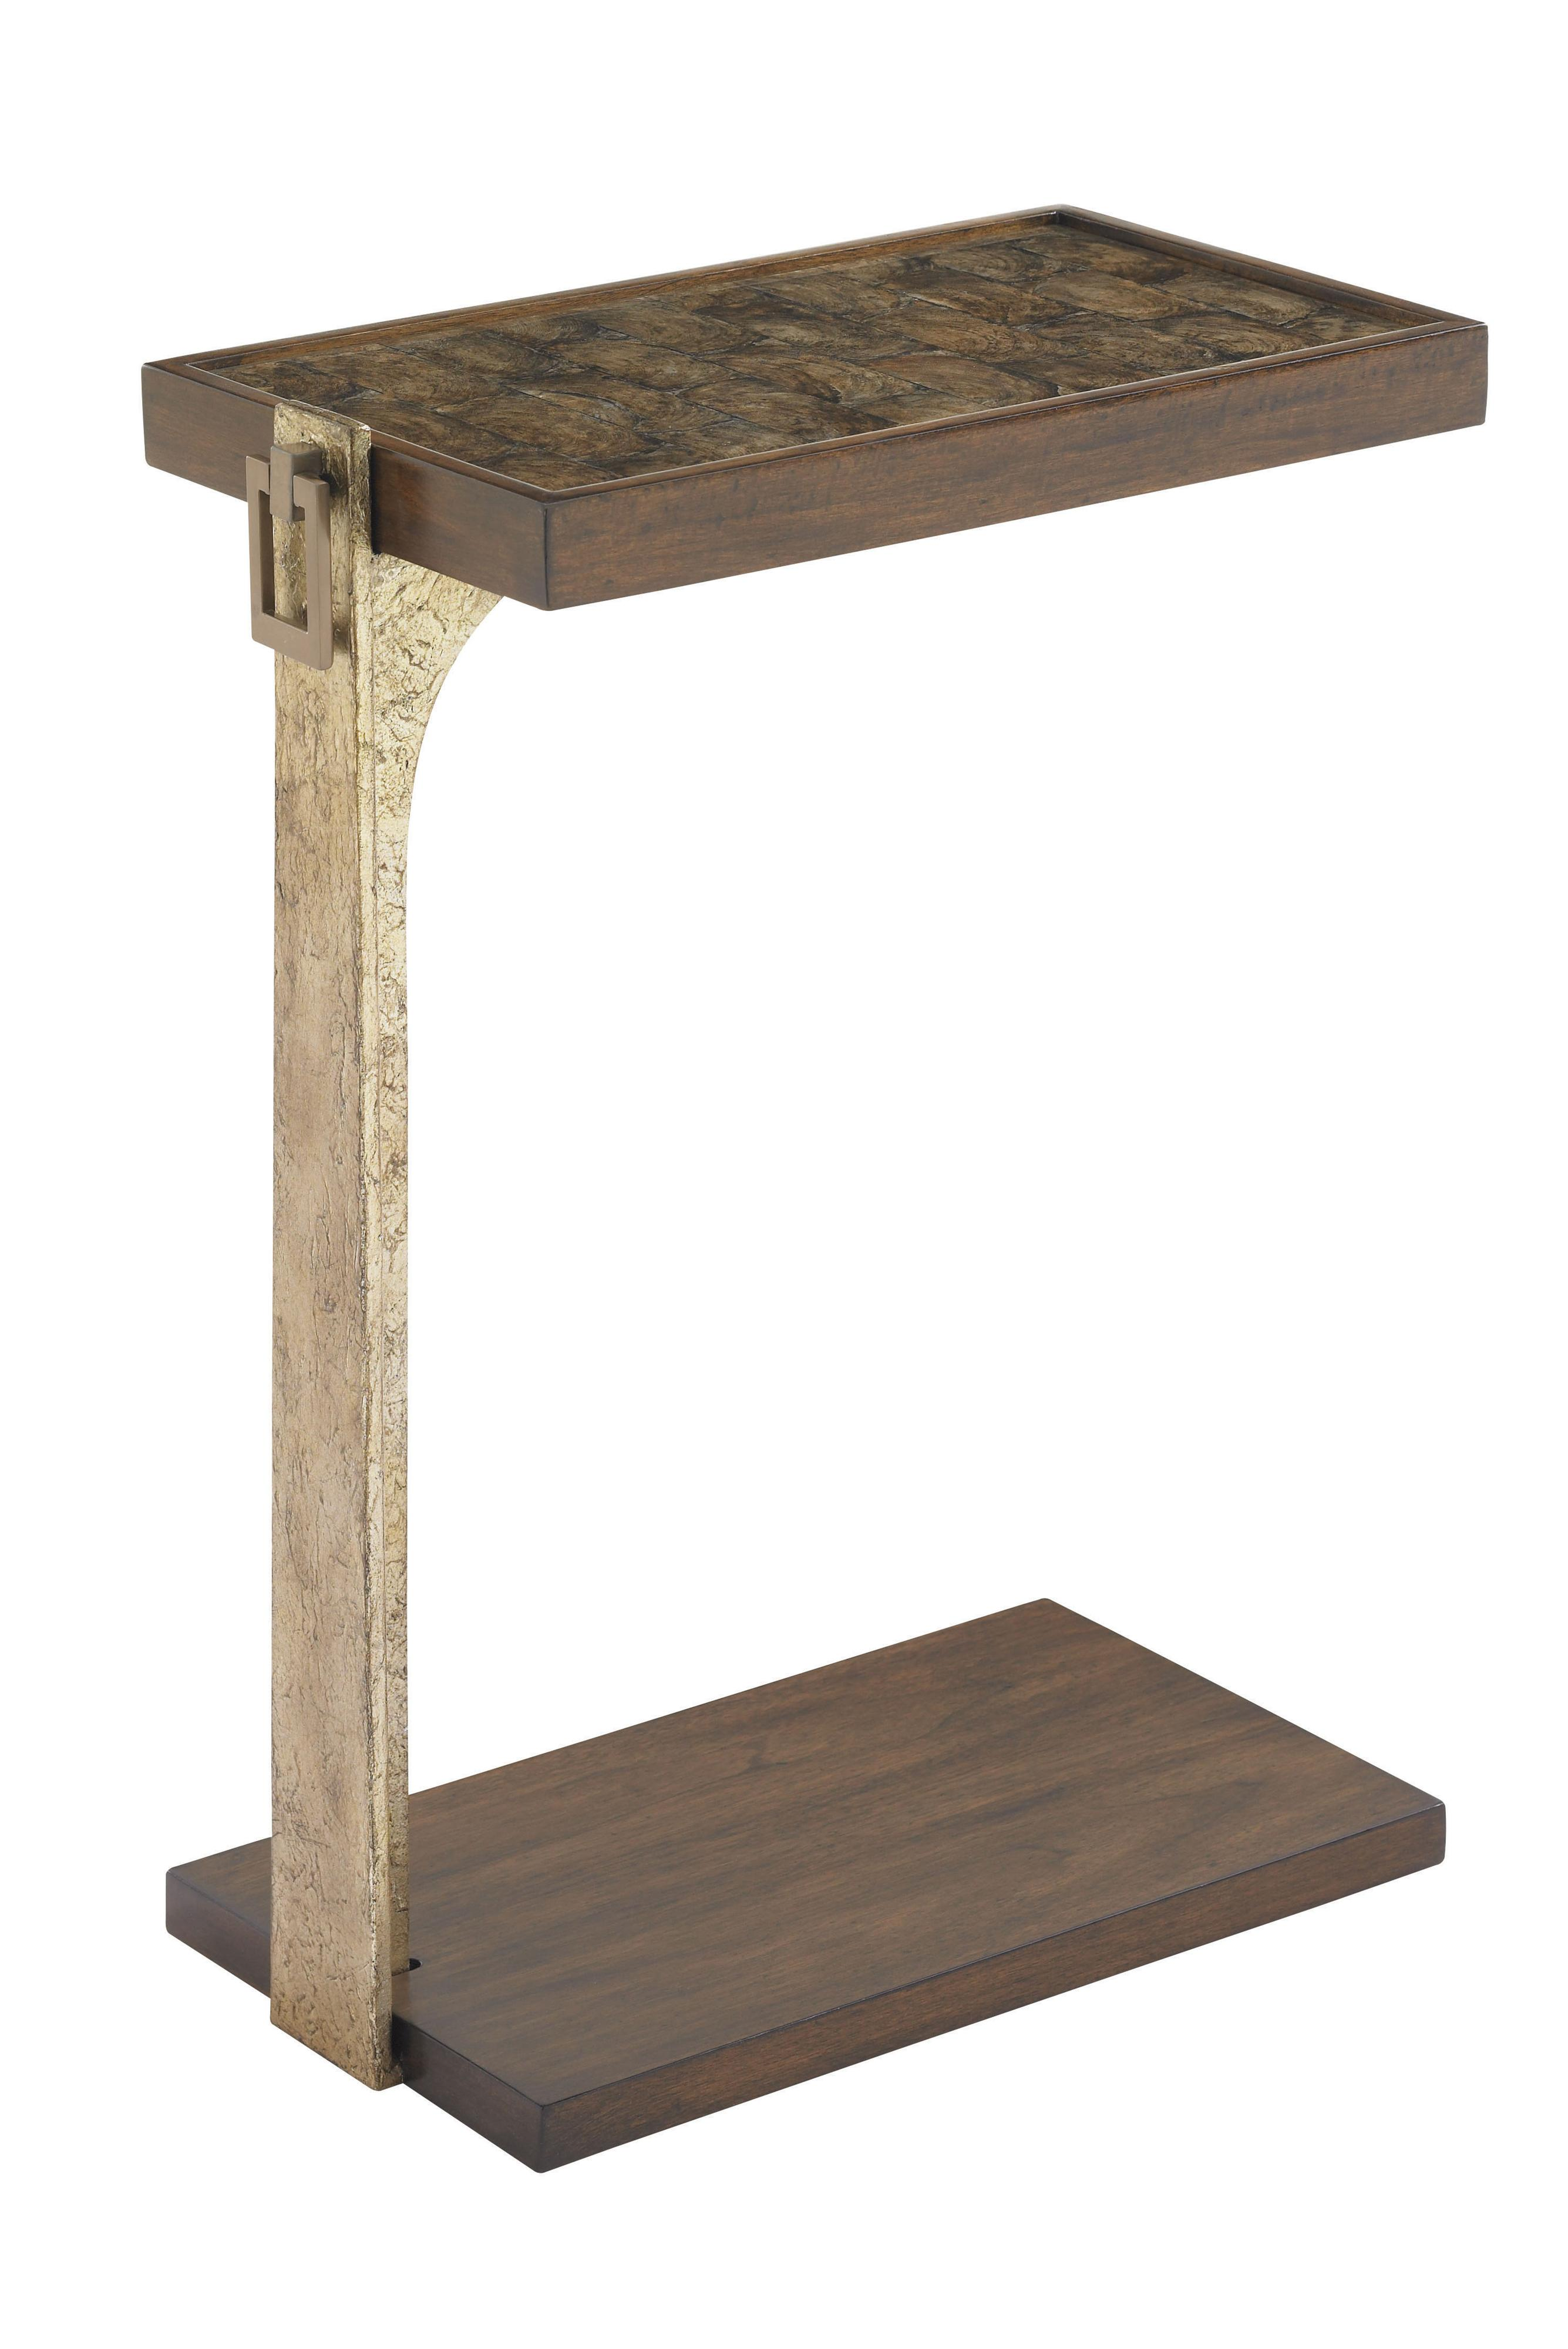 Tower Place Orland Chairside Table by Lexington at Johnny Janosik